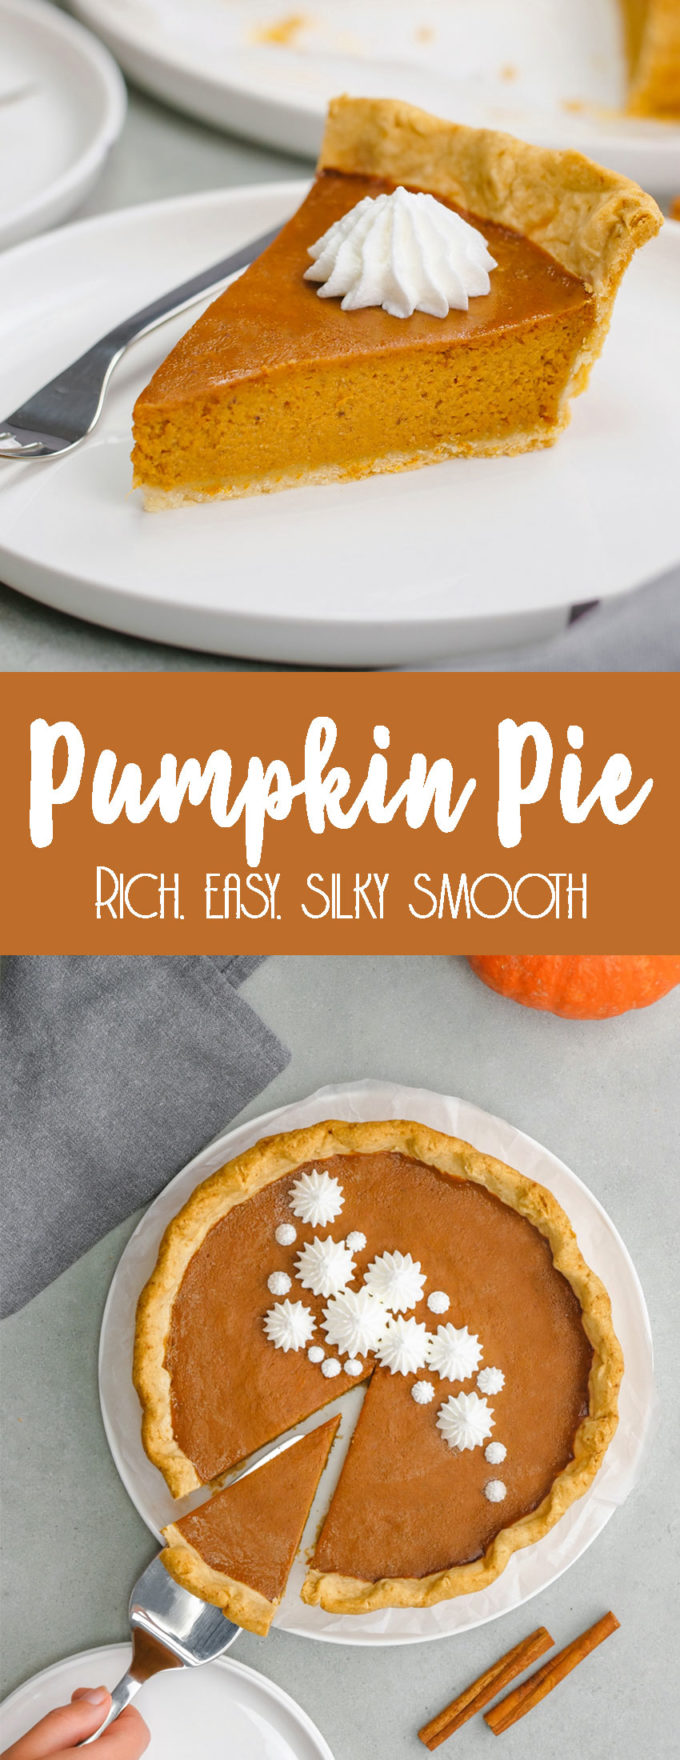 Easy to make, richly seasoned, and silky smooth pumpkin pie.